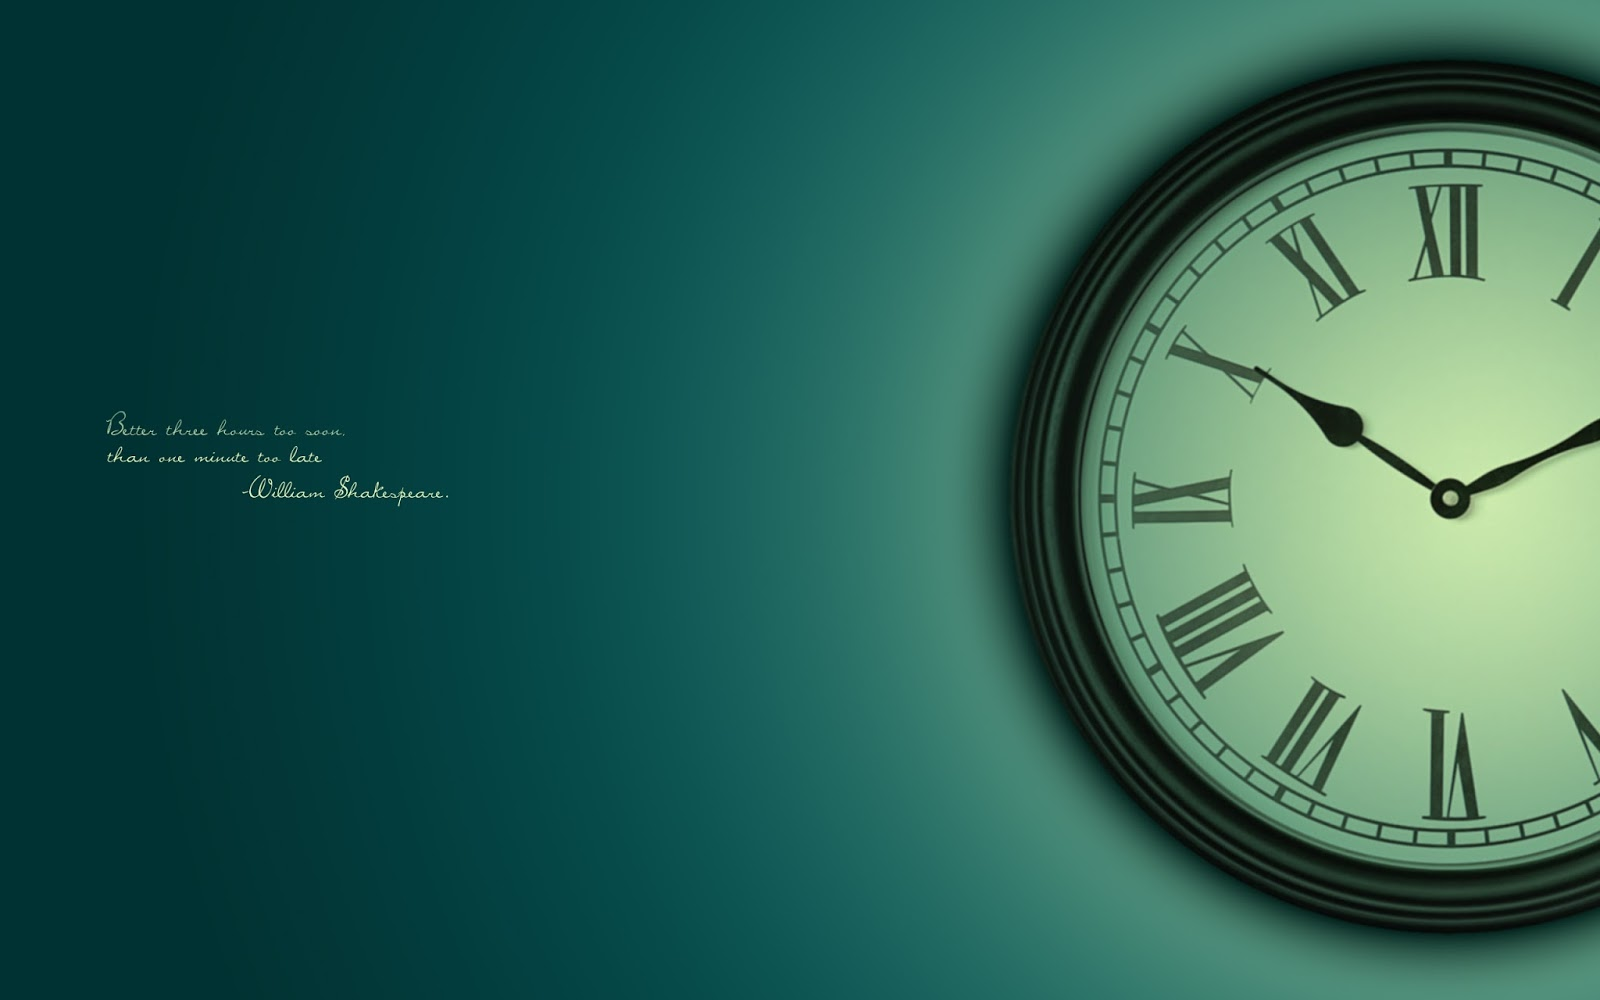 Top Wallpaper Home Screen Inspirational - clock-wide-of-2013  Perfect Image Reference_425452.jpg